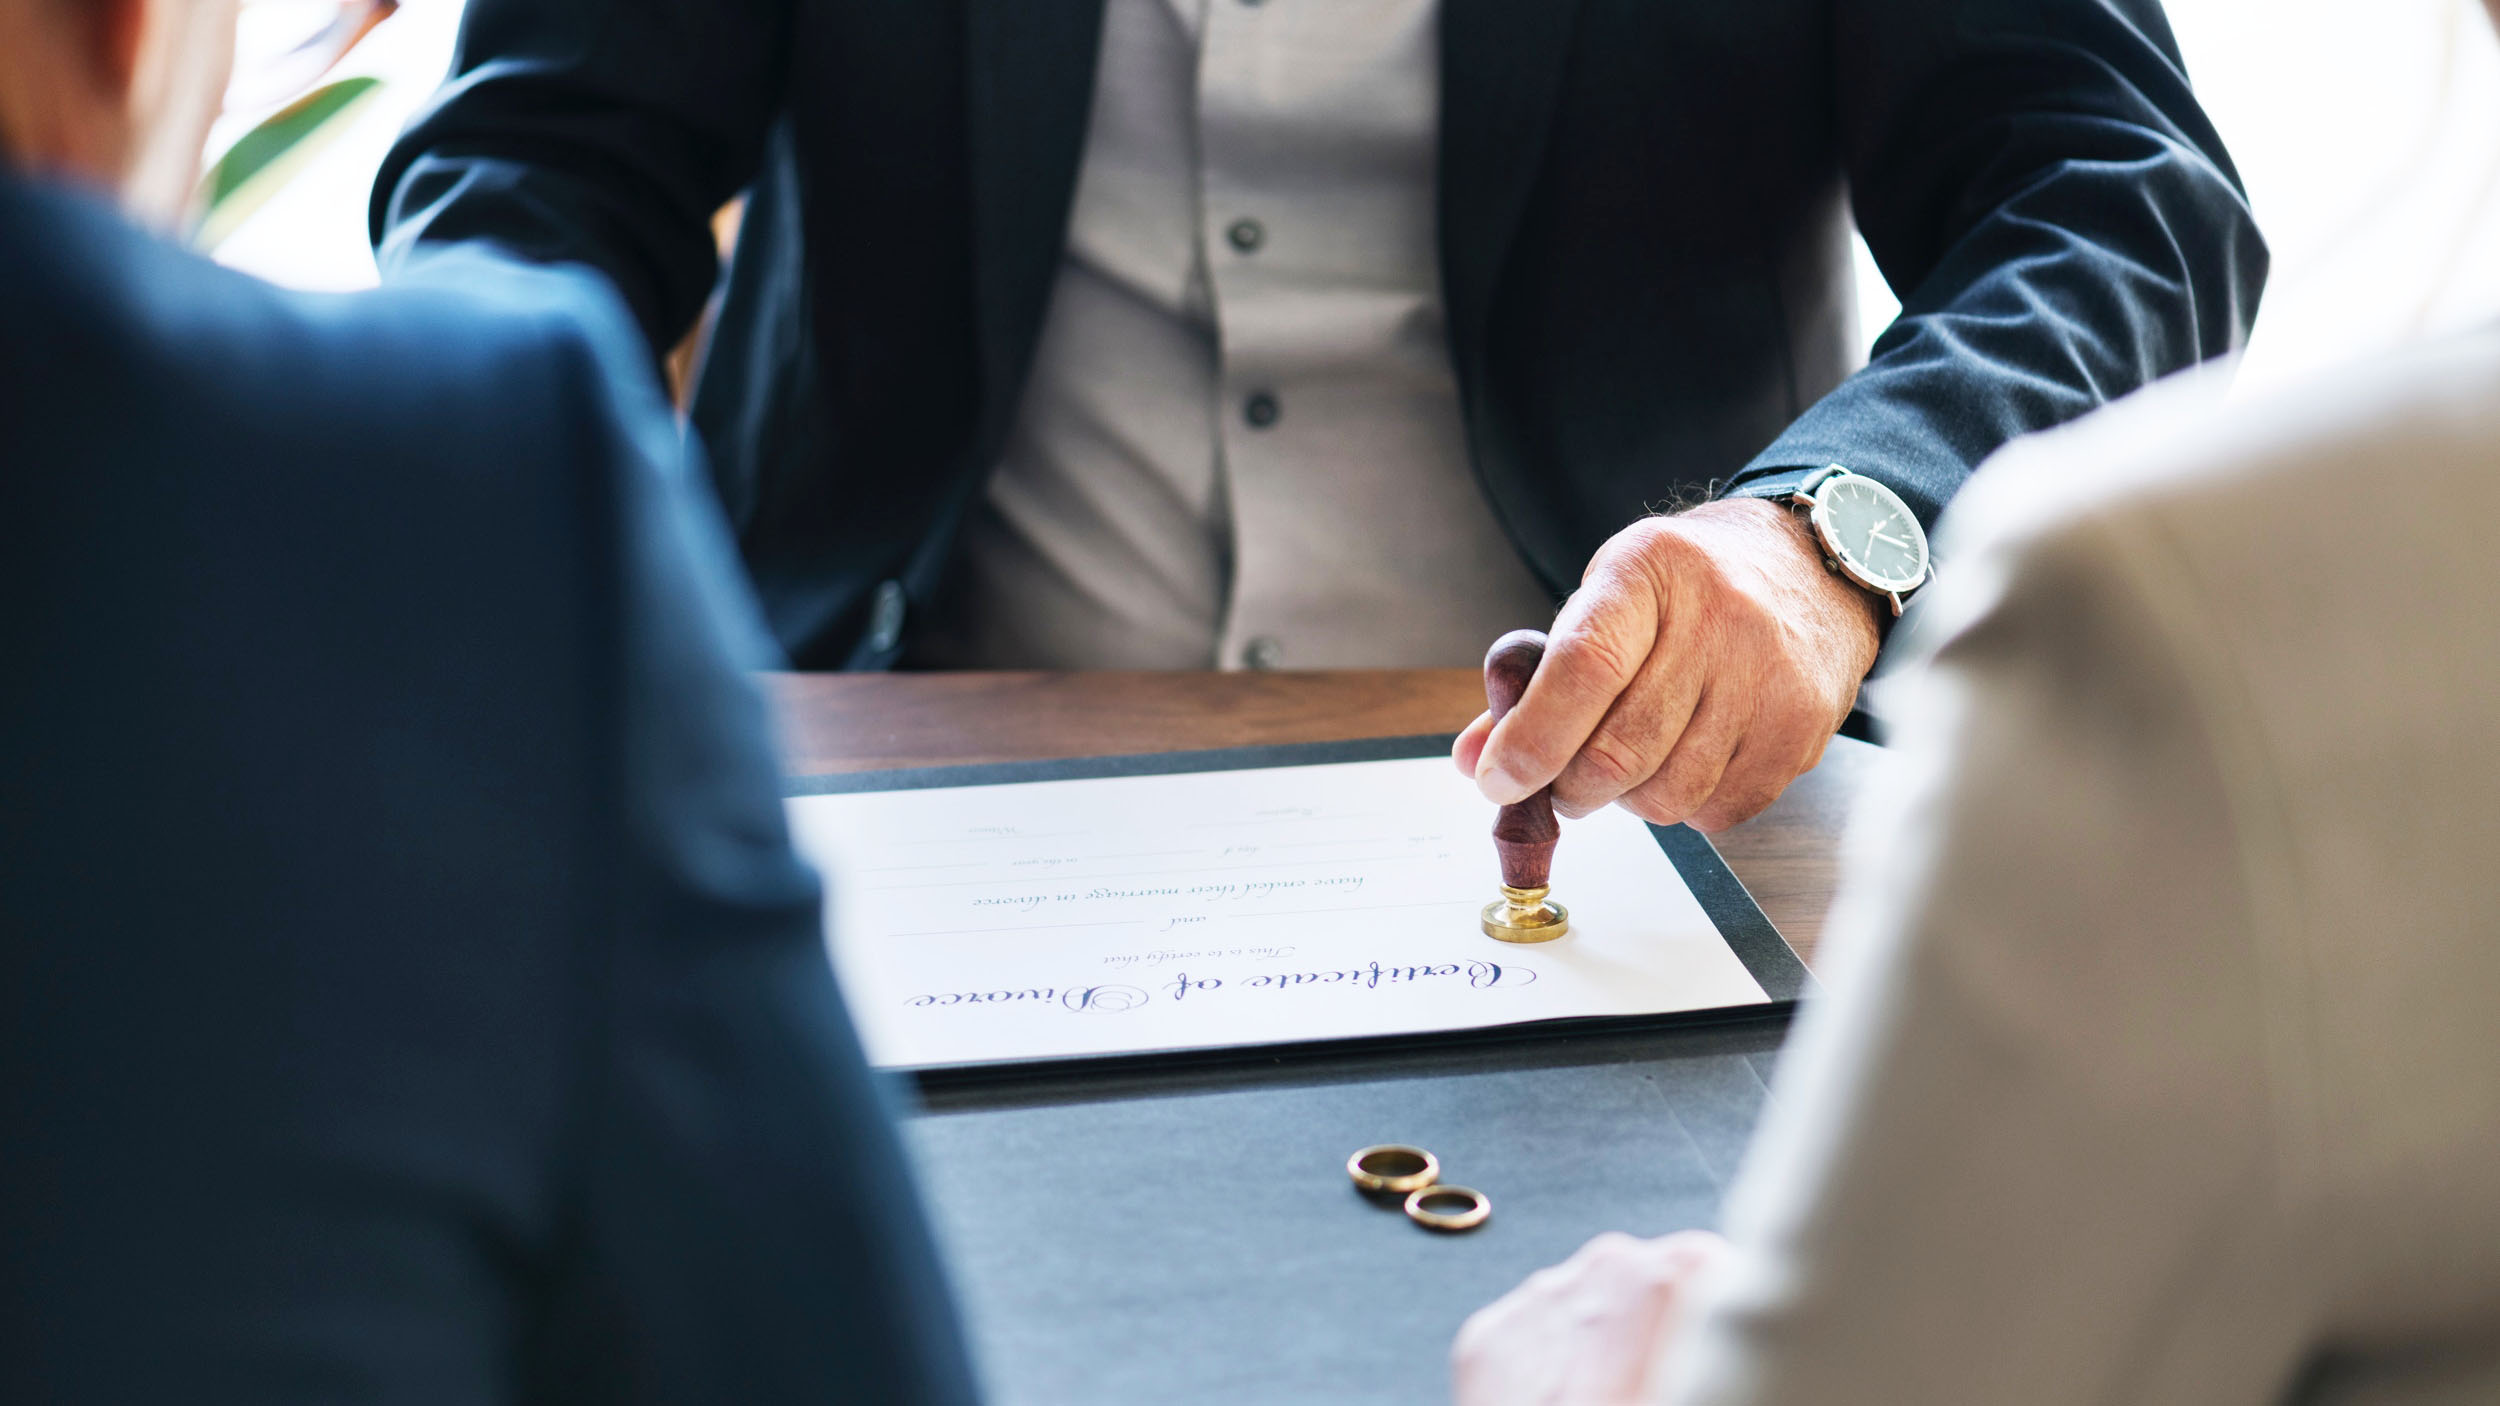 Cryptocurrencies are becoming more popular as a payment method in law industry